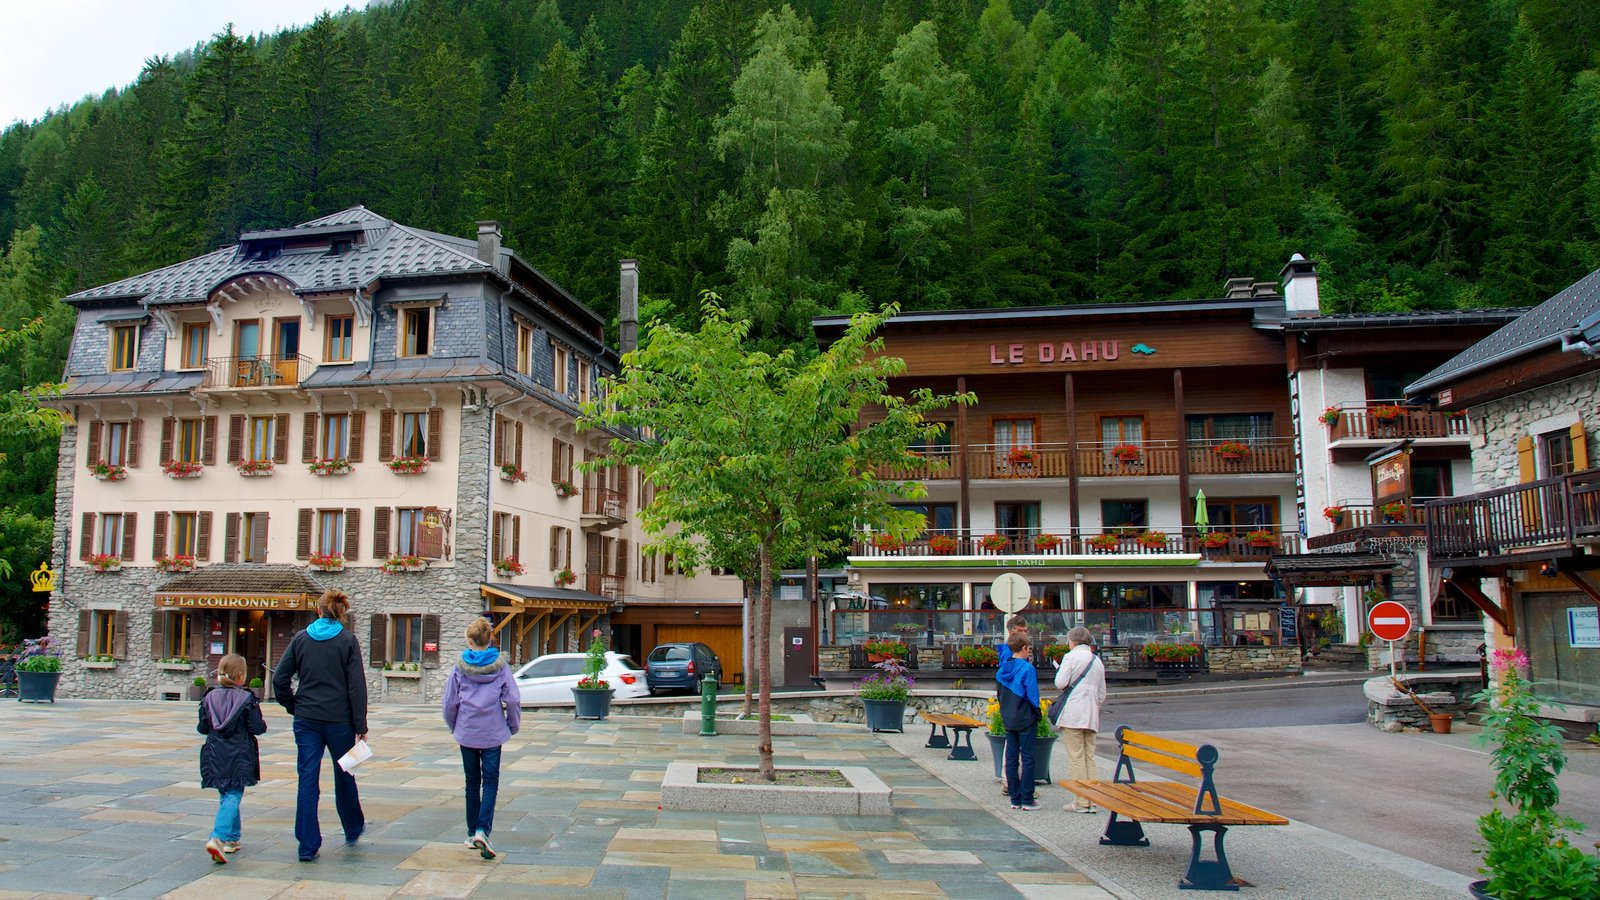 Argentiere which includes a hotel, a small town or village and a square or plaza